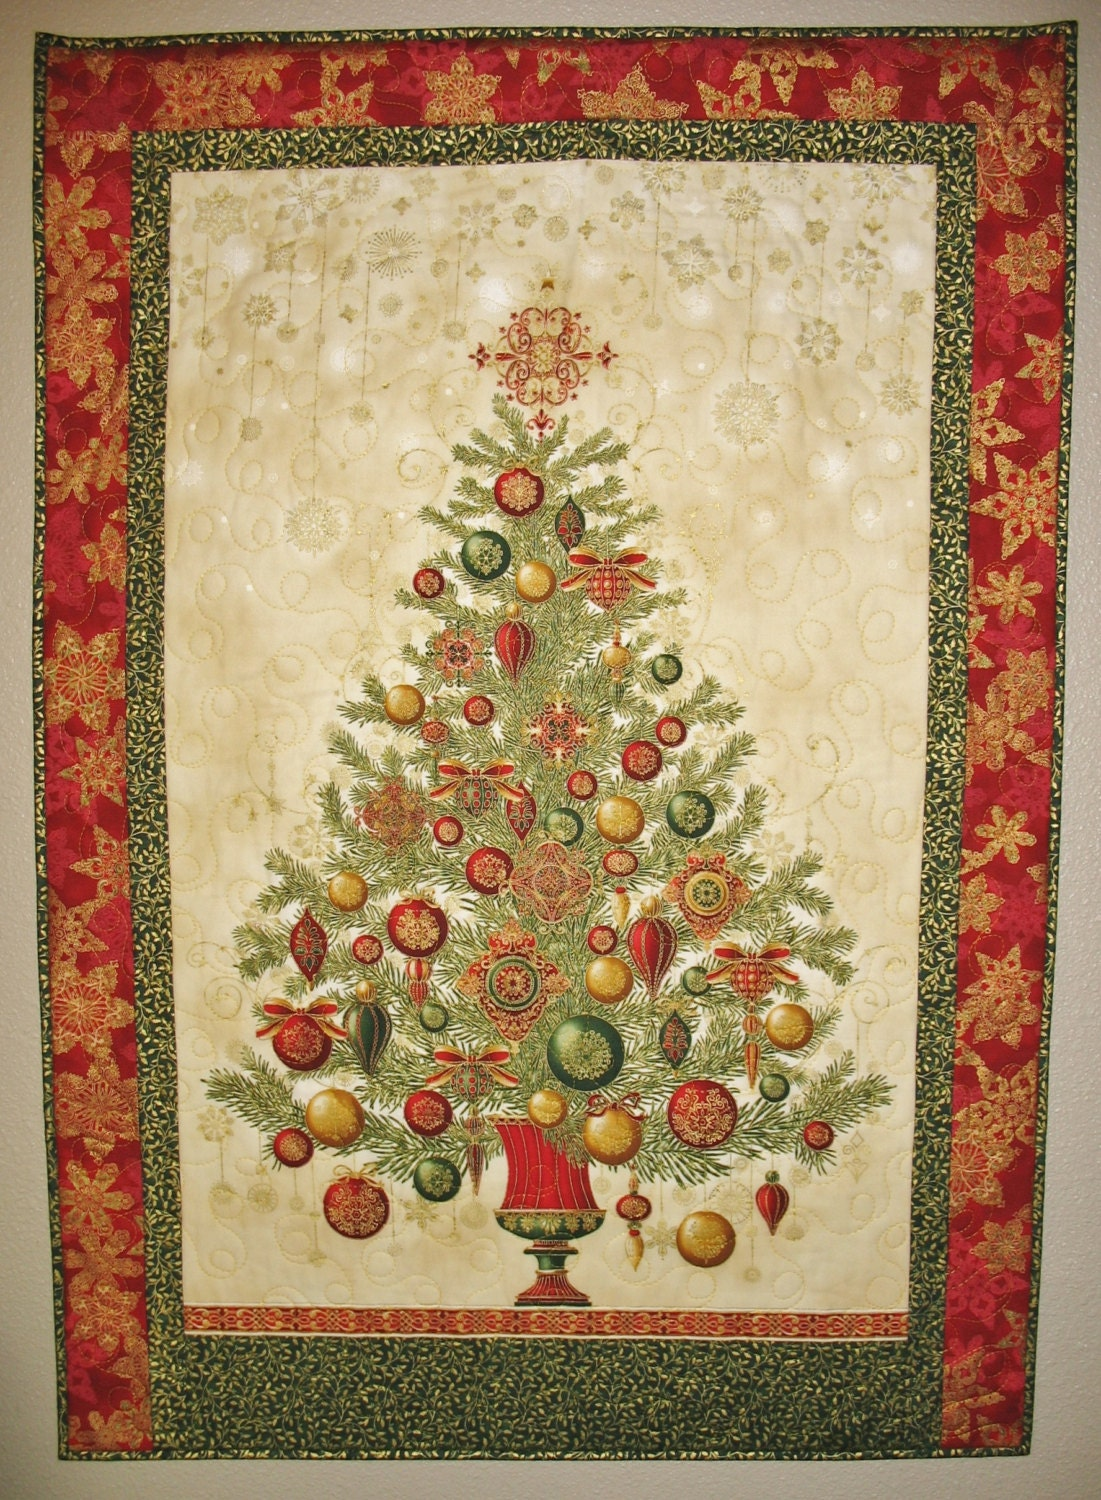 Christmas wall hanging ornamnets gold red green